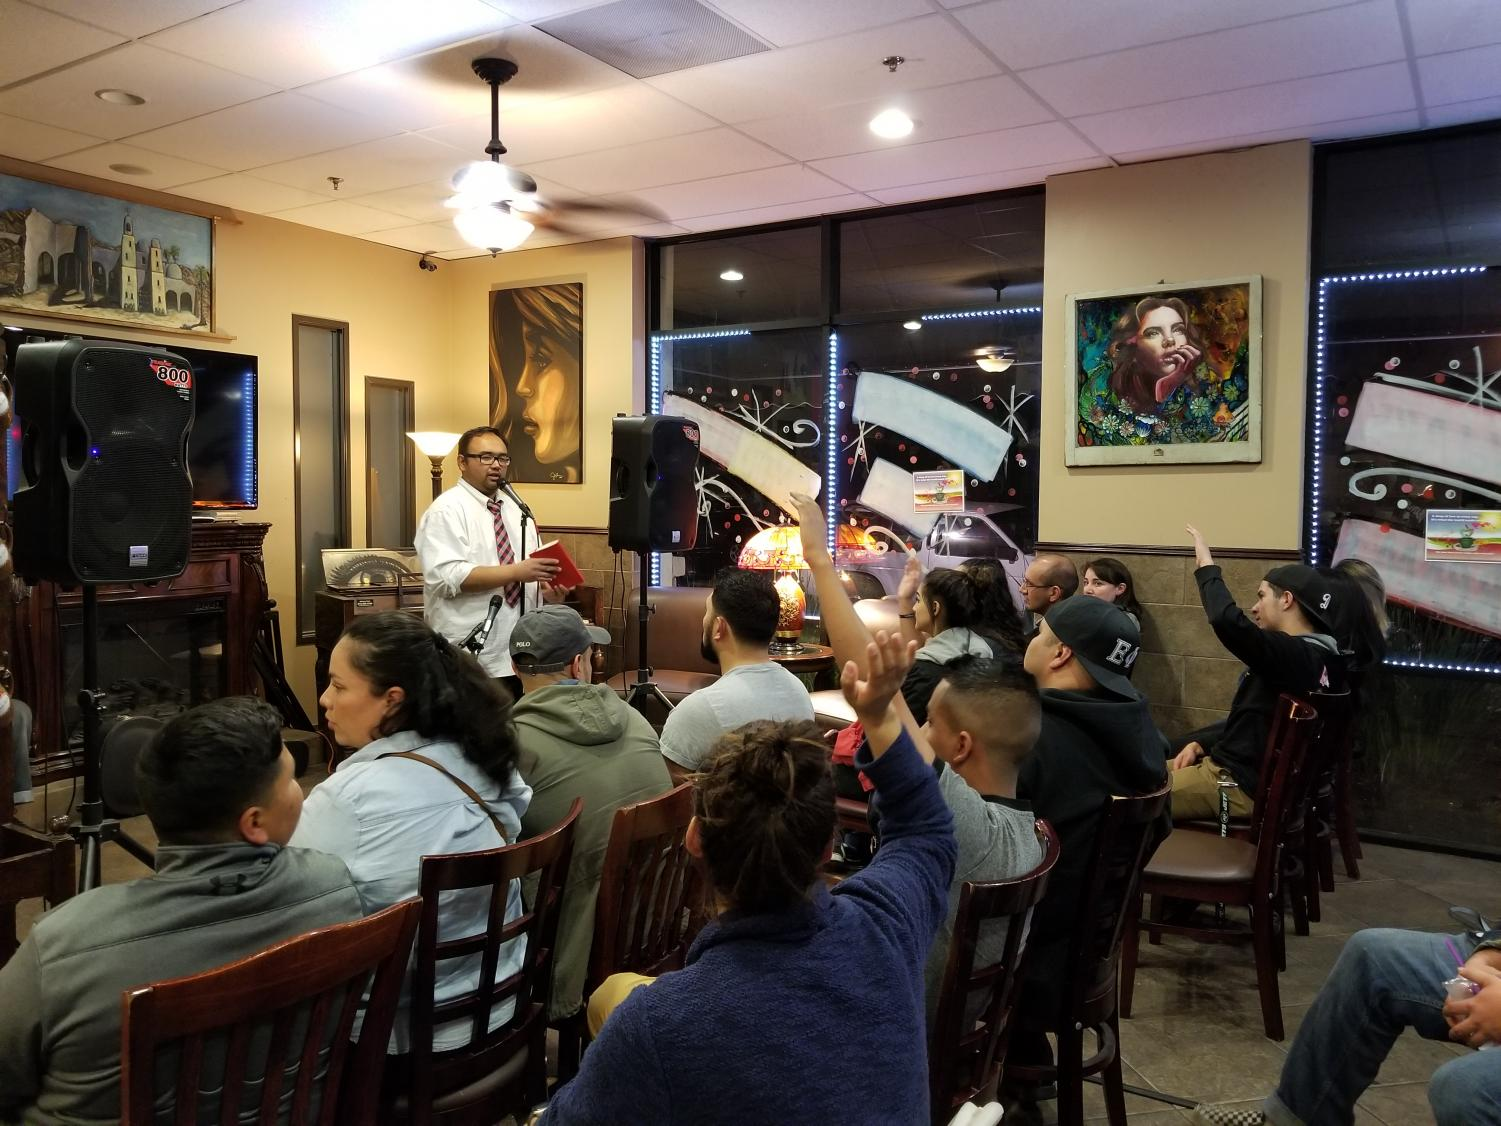 One of the hosts of the Daily Brew Open Mic, K.P., addresses the audience at a Wednesday night show. Members of the audience raise their hands to show their support.